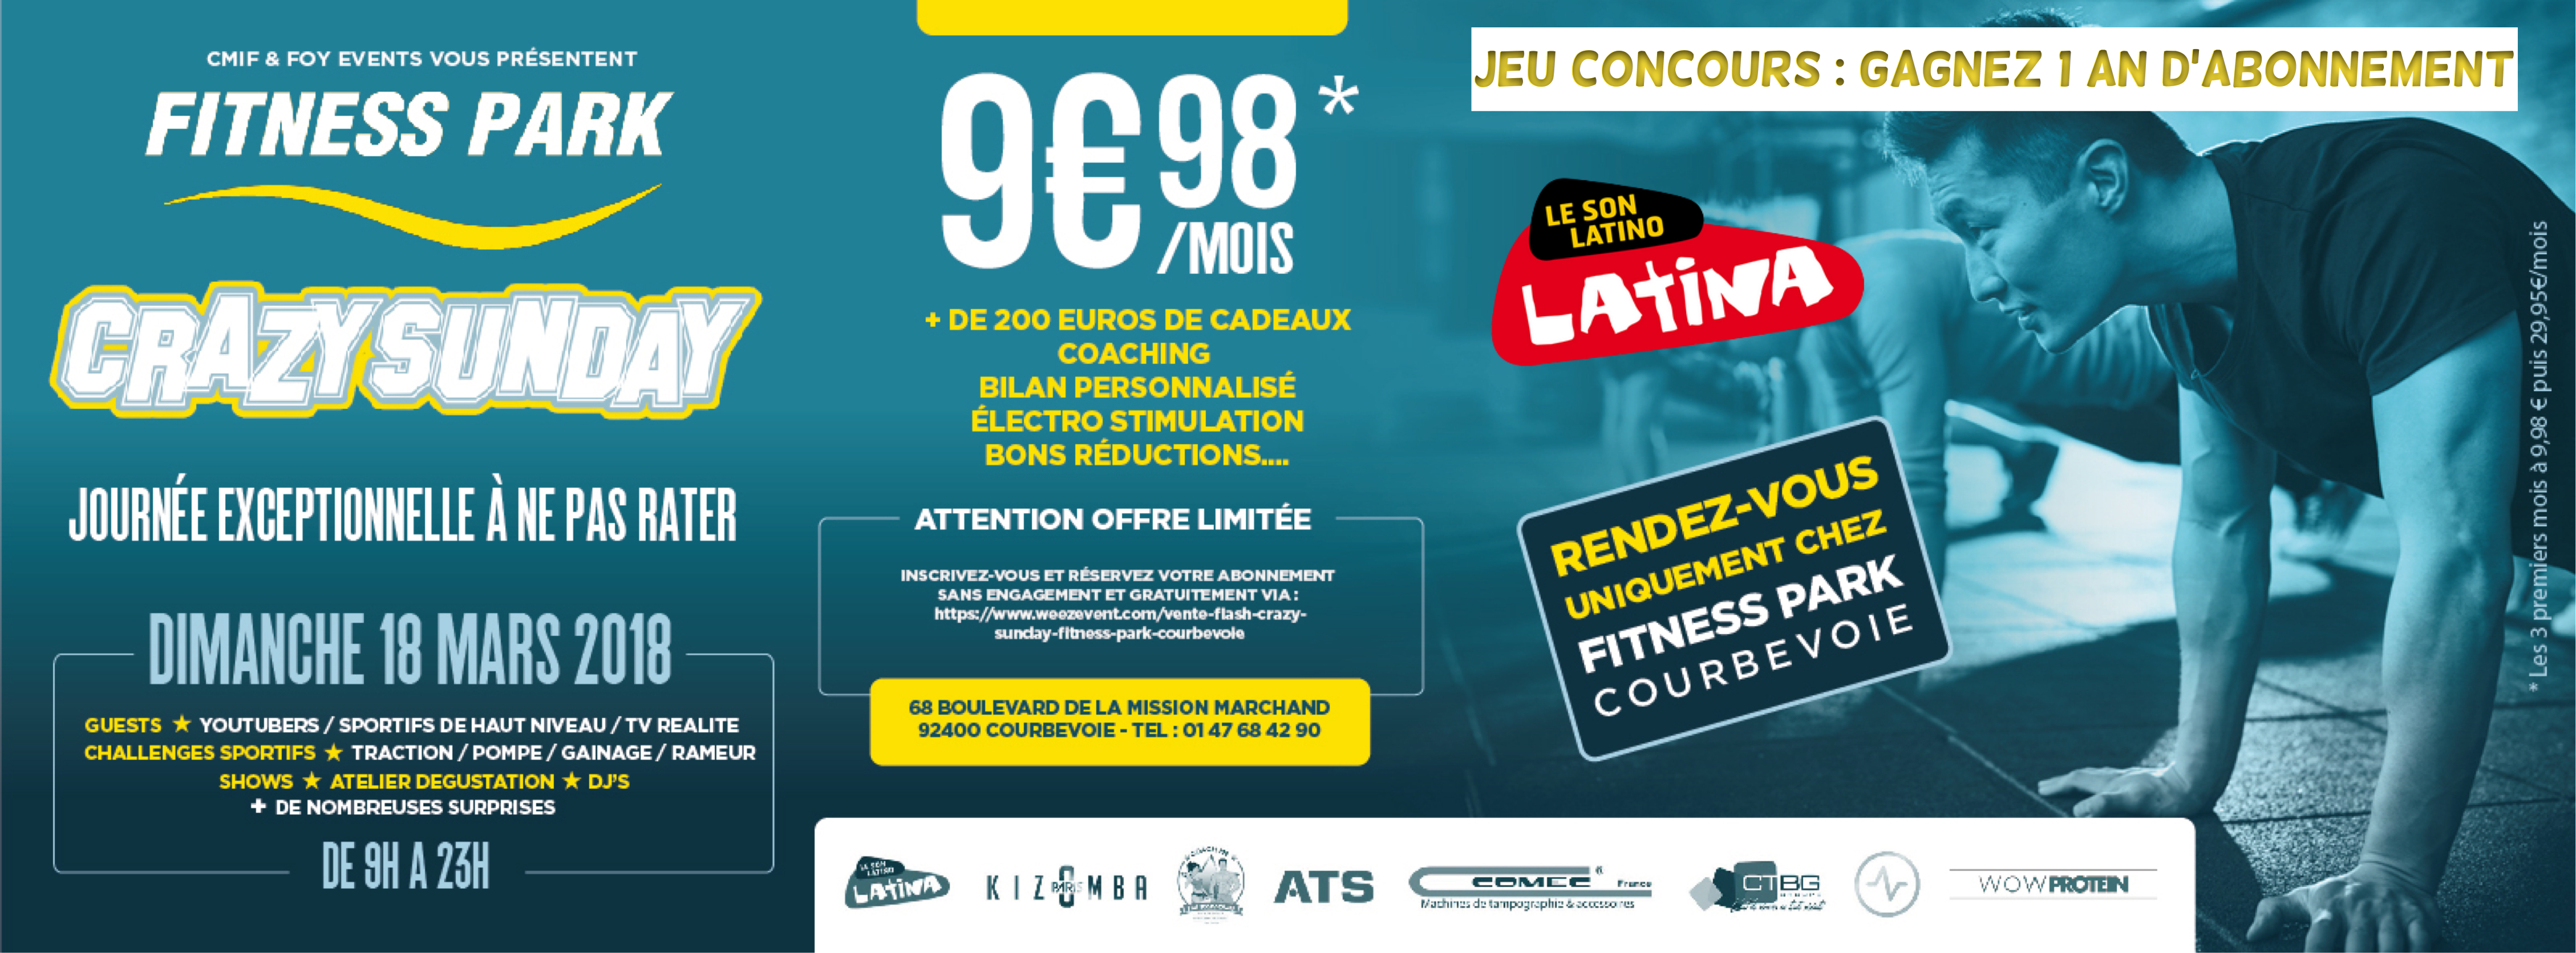 Fitness Park Courbevoie